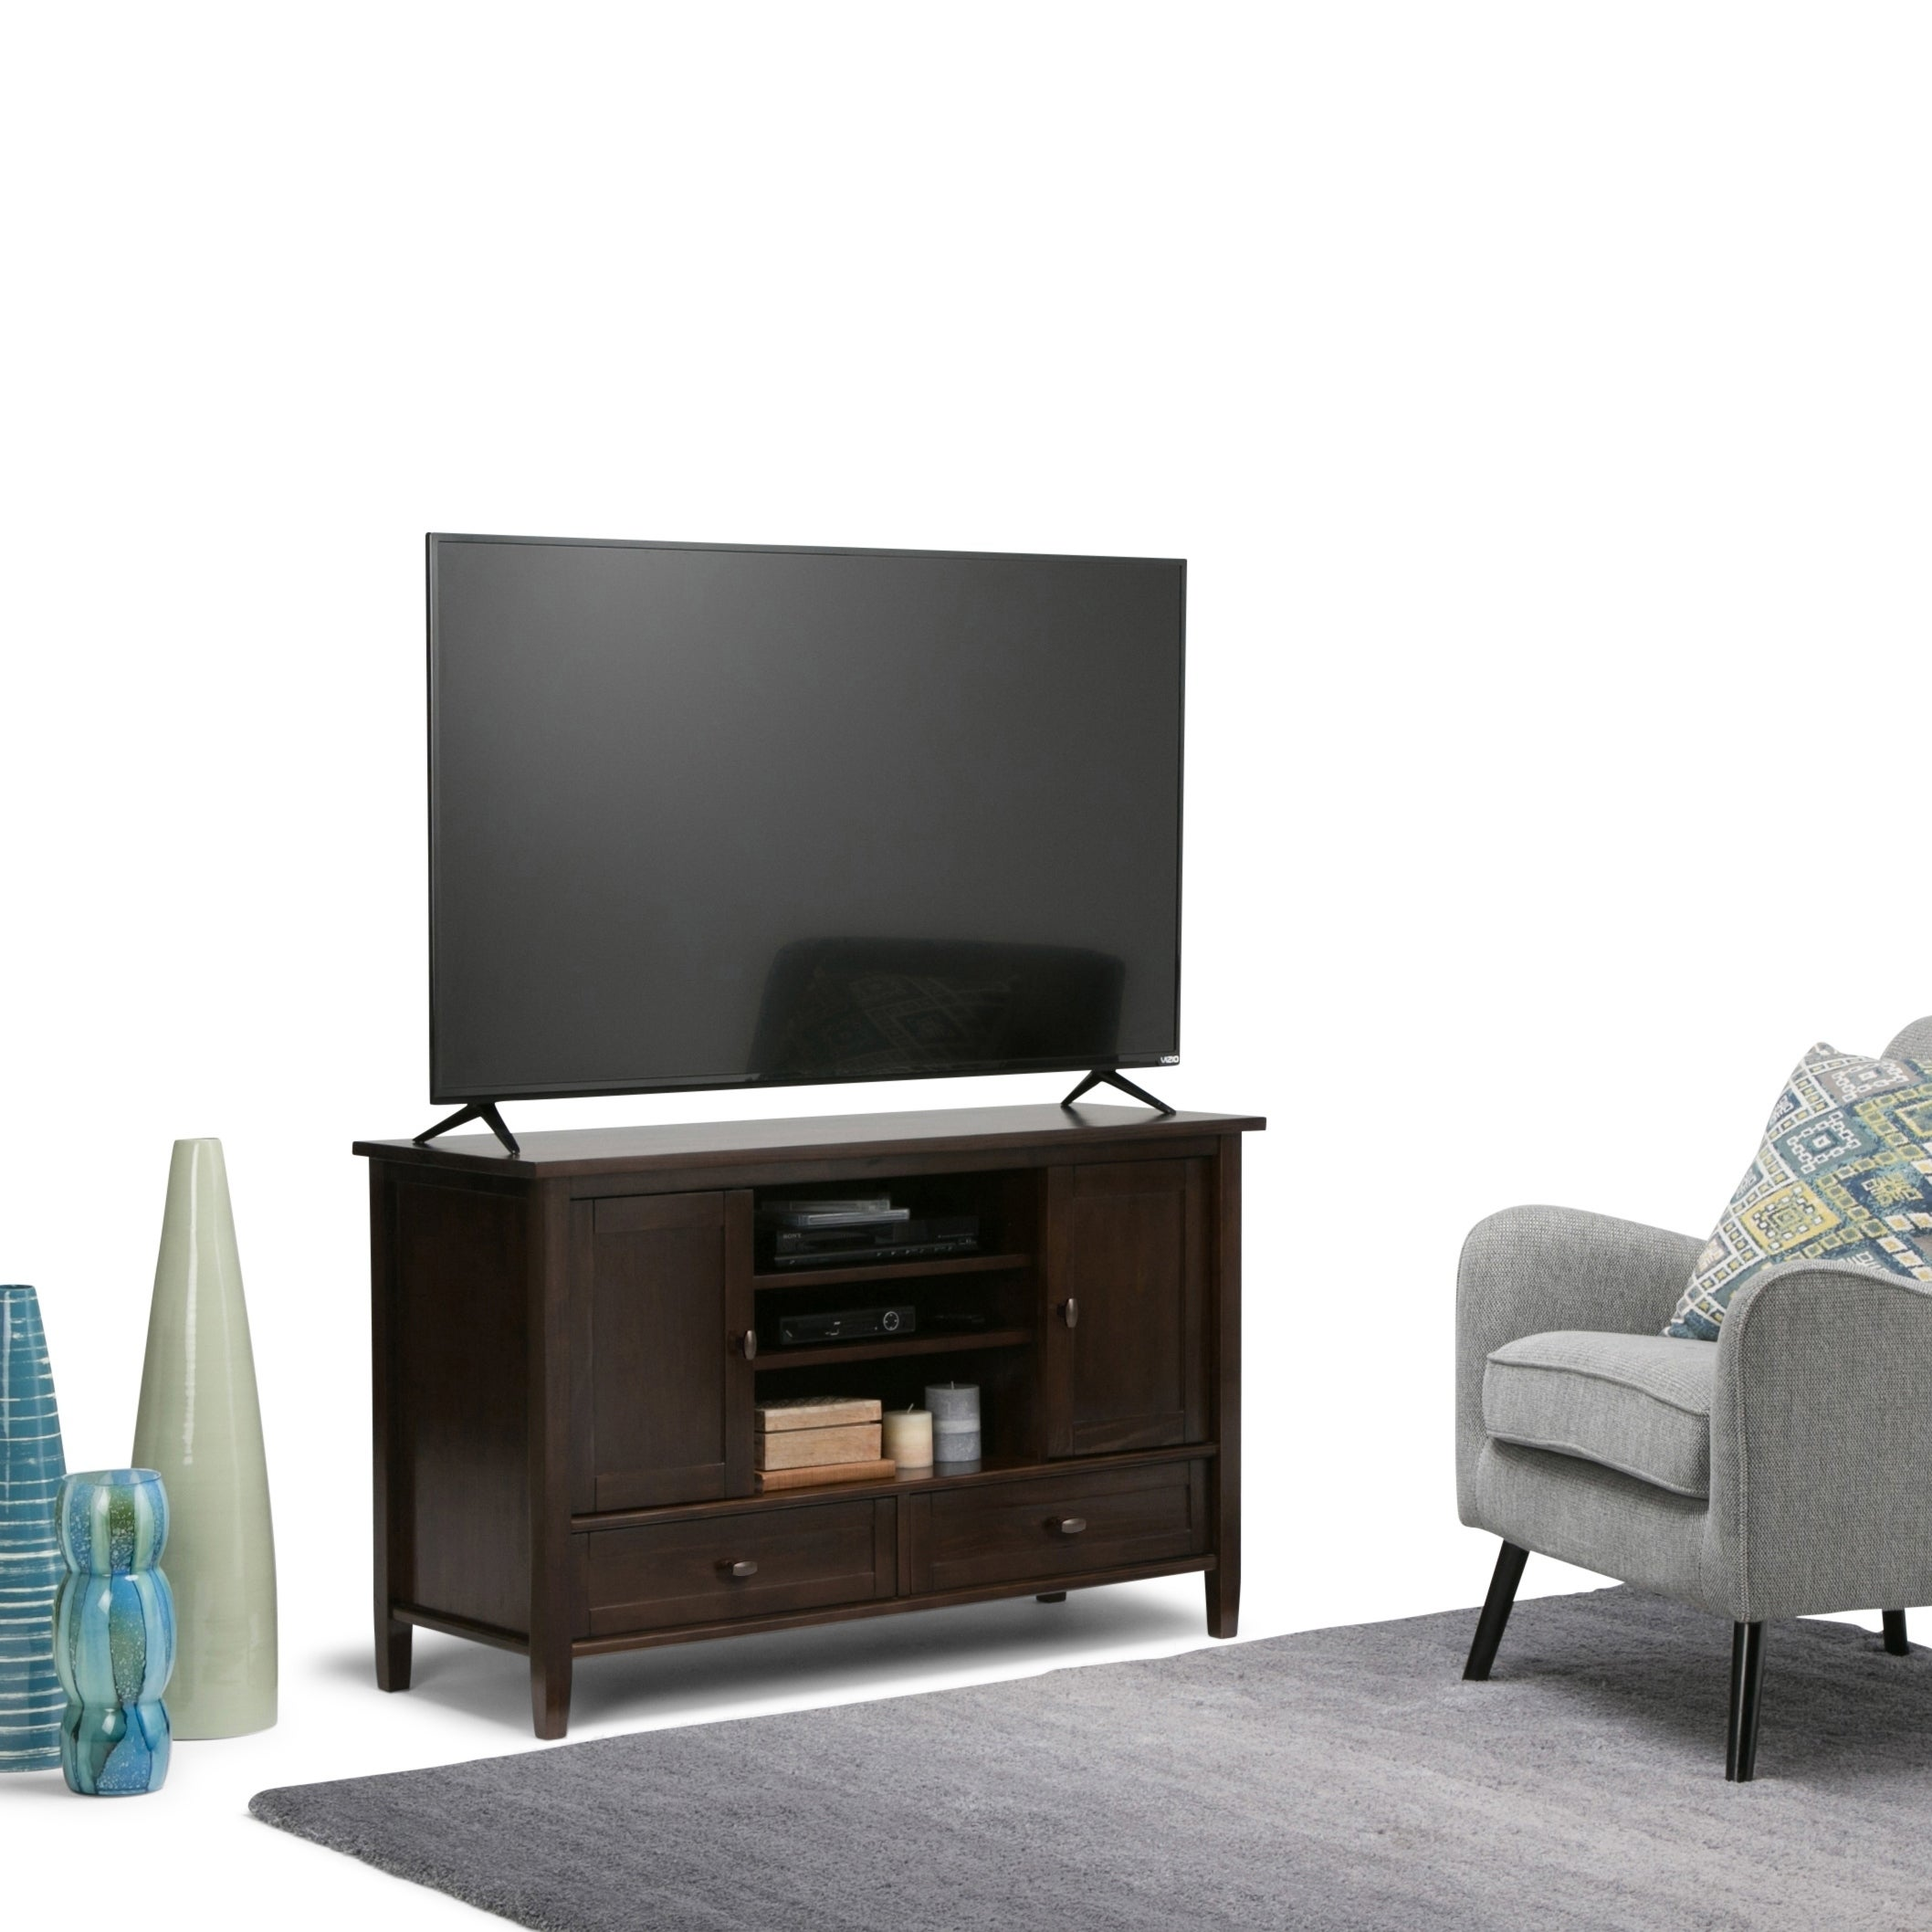 new products 99bf7 1be19 WYNDENHALL Norfolk Solid Wood 47 inch Wide Rustic TV Media Stand For TVs up  to 50 inches - 47